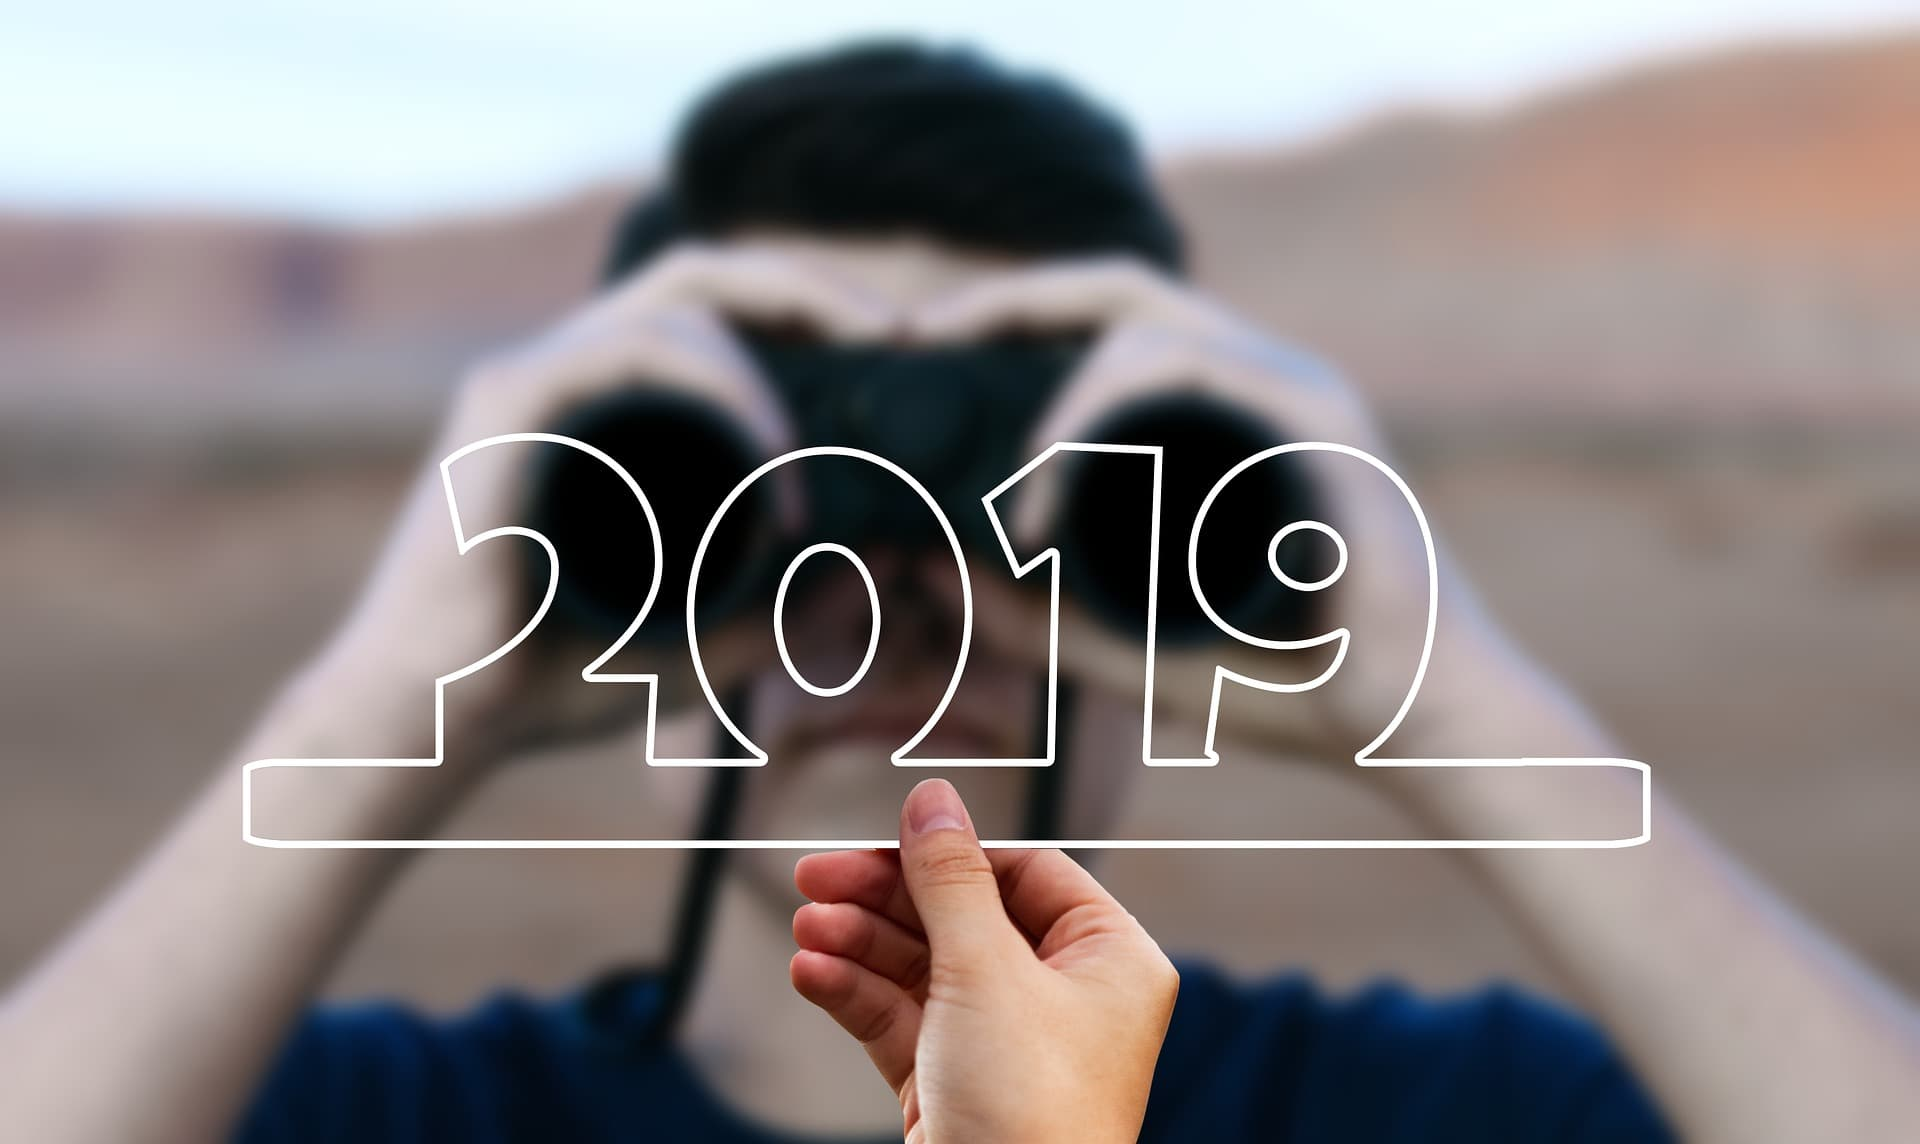 2019 trends economic, political and technological sectors.